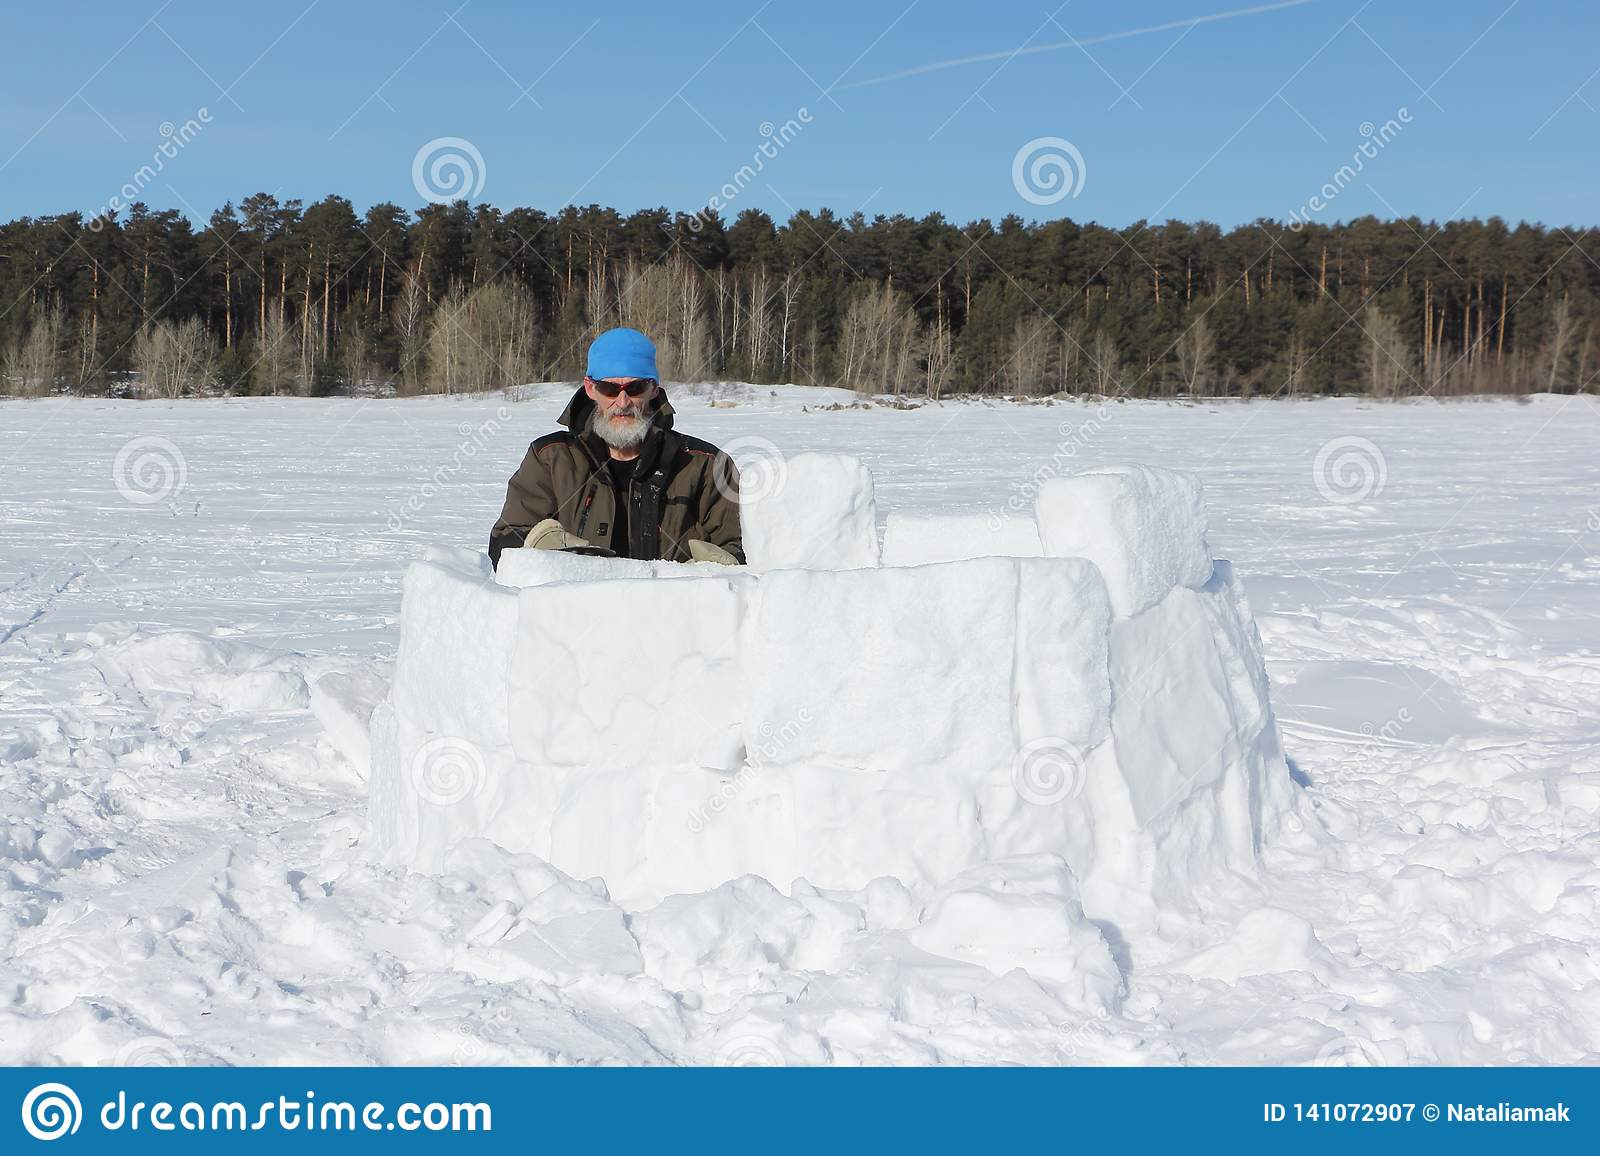 71021f515 Man In A Blue Hat And Sunglasses Building An Igloo From Snow Blocks ...